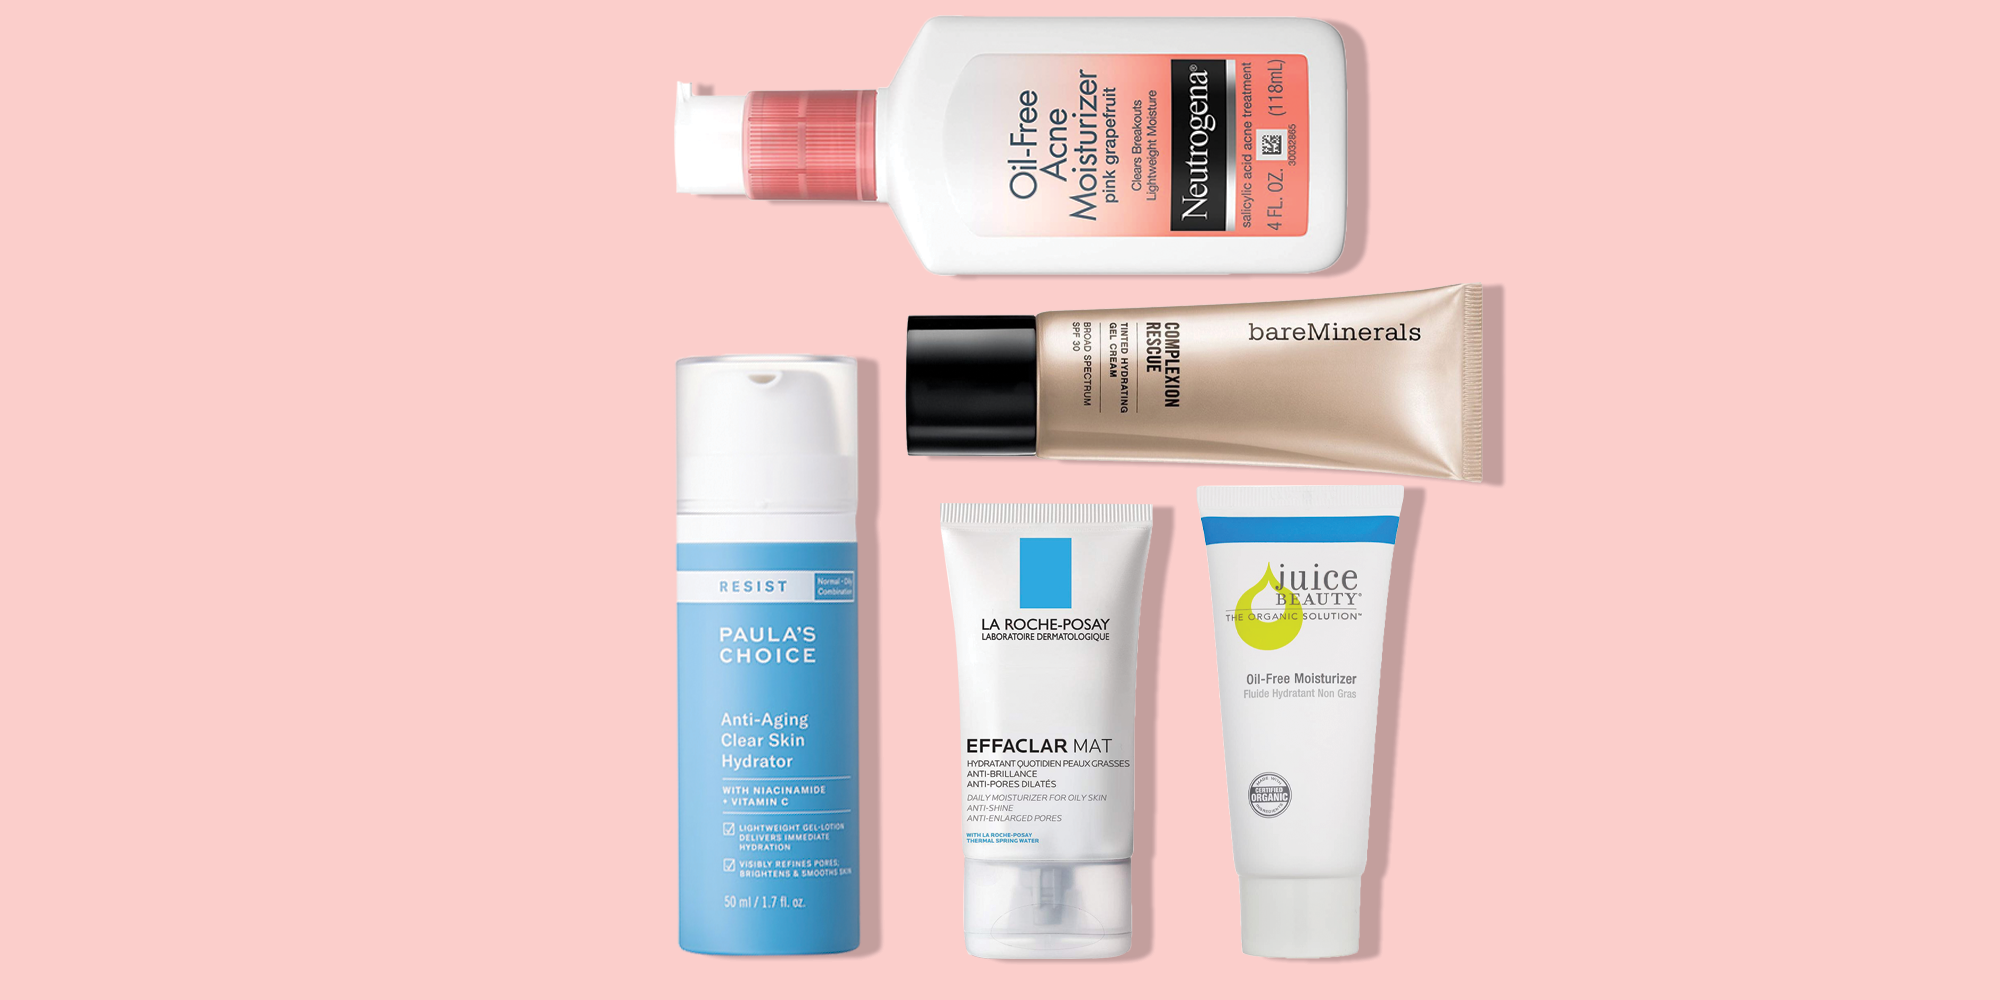 12 Best Moisturizers for Oily Skin 1221 - Top Rated Oil-Free Face